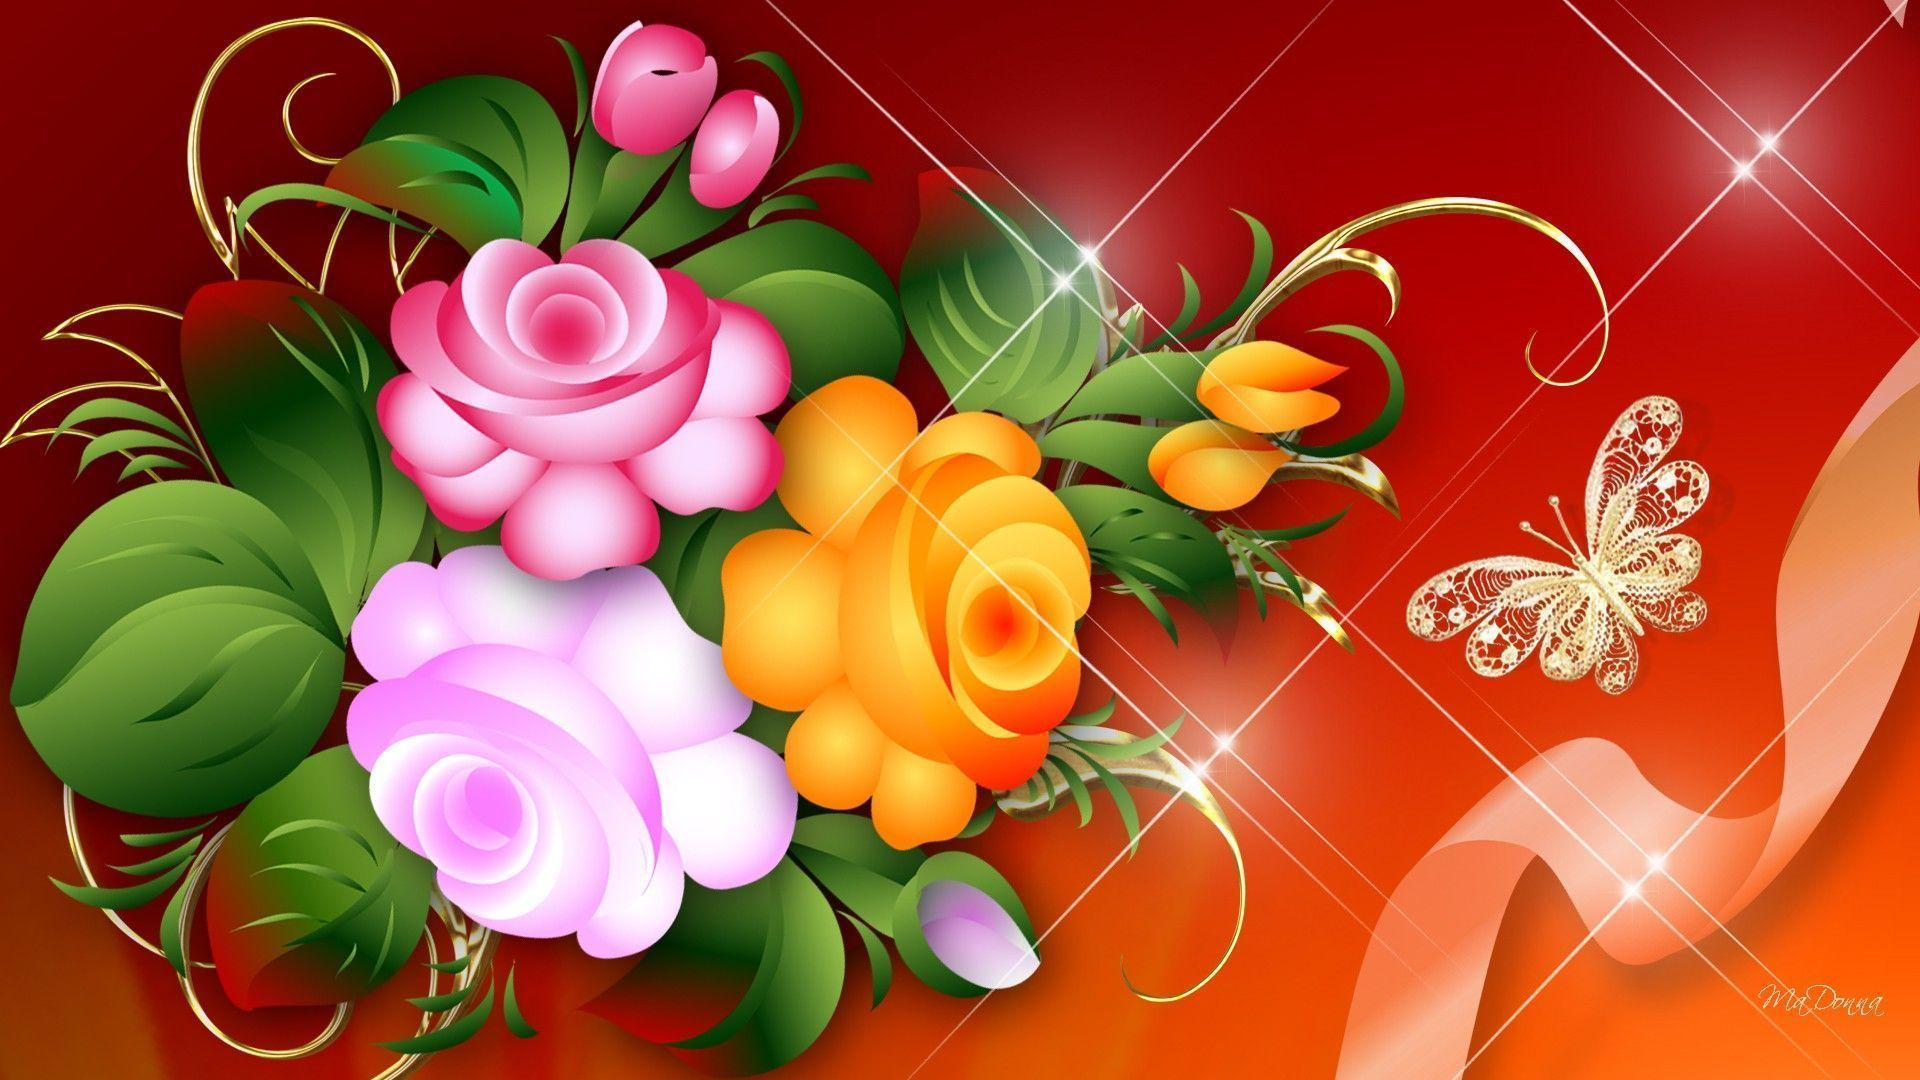 Bright Flower Wallpapers - Wallpaper Cave